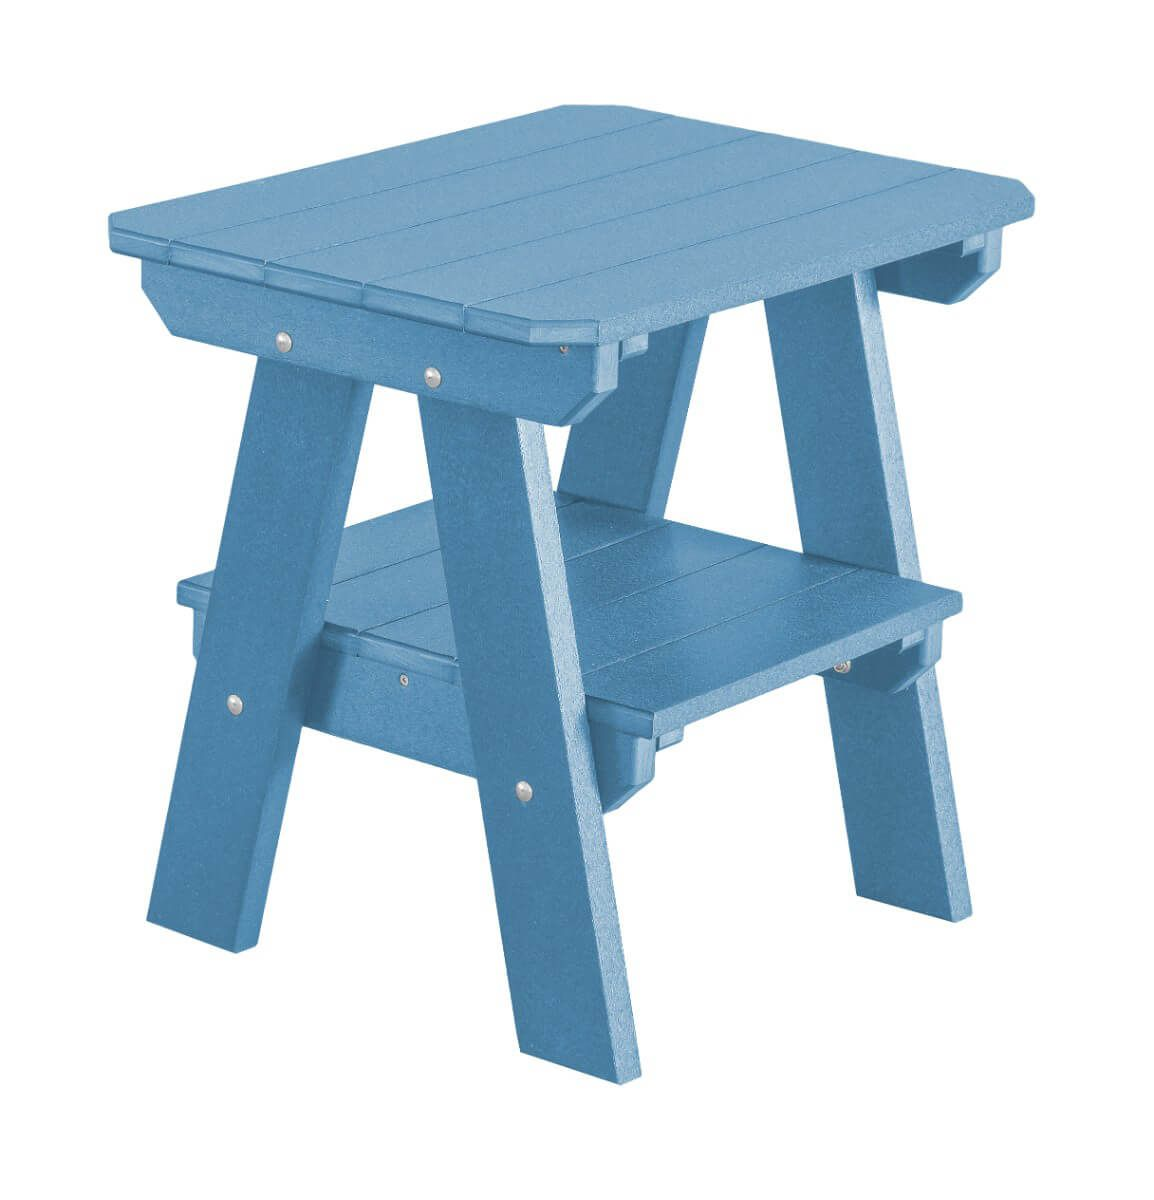 Powder Blue Sidra Outdoor End Table